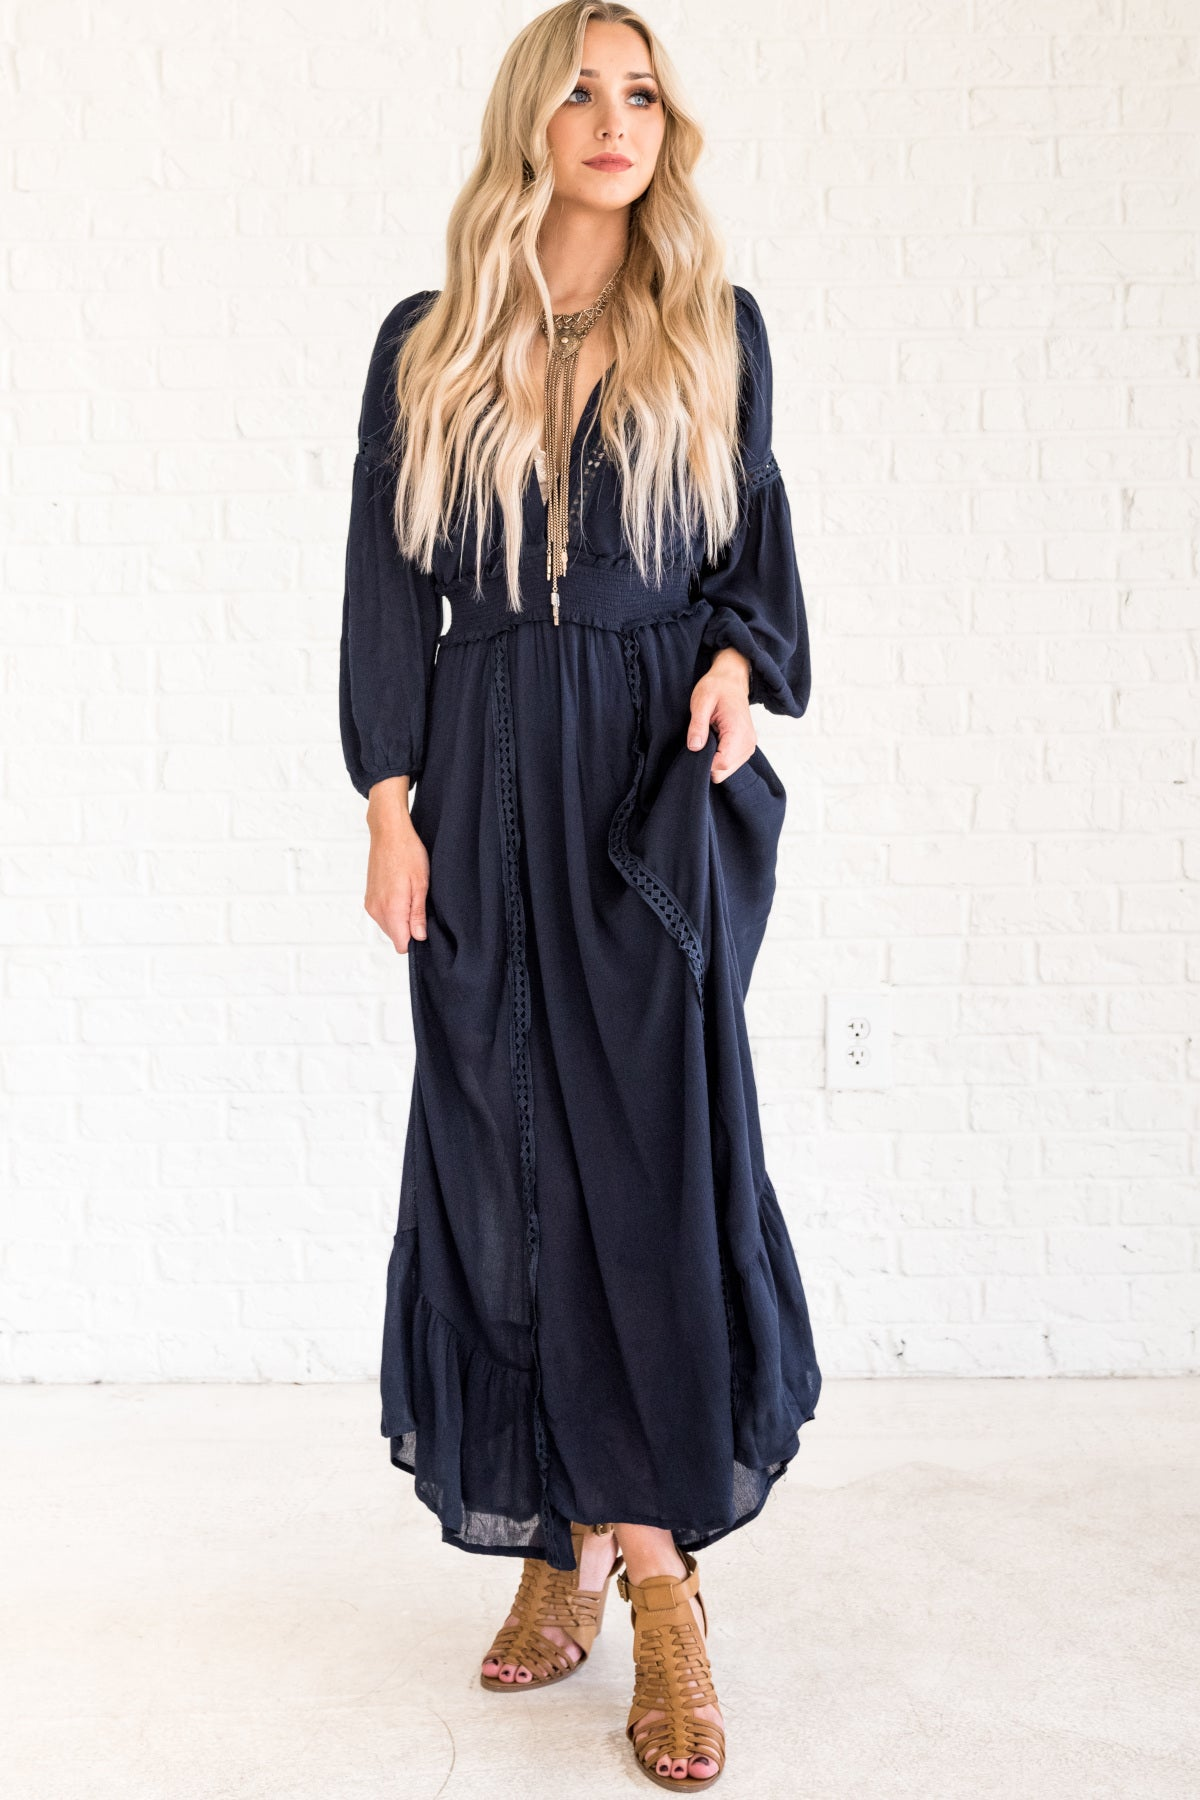 Navy Blue Cute Boho Chic Crochet Maxi Dress with Skirt Lining